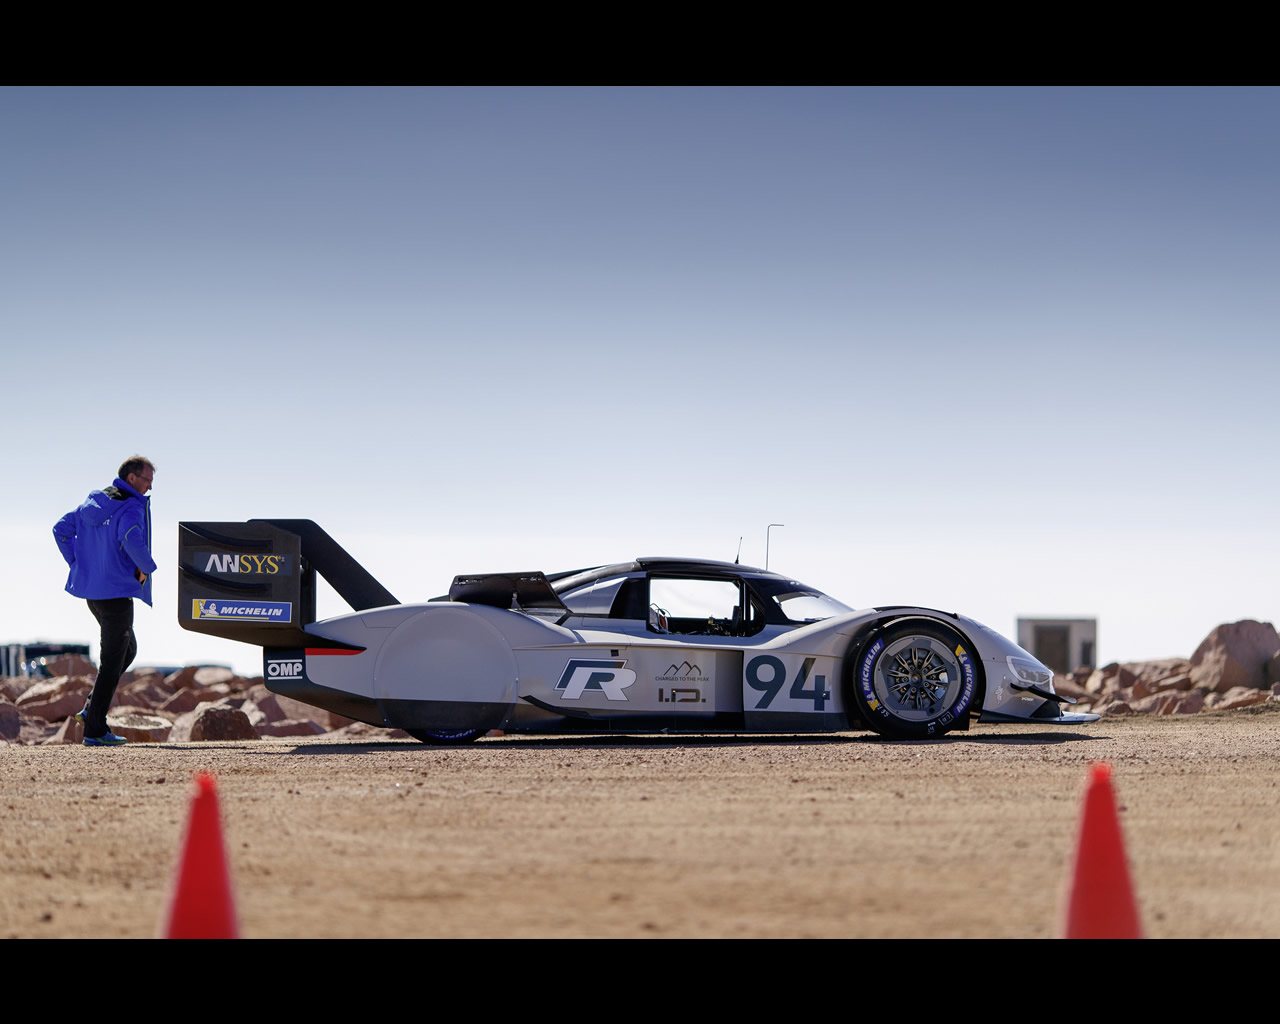 volkswagen i d r pikes peak electric race car record 2018. Black Bedroom Furniture Sets. Home Design Ideas